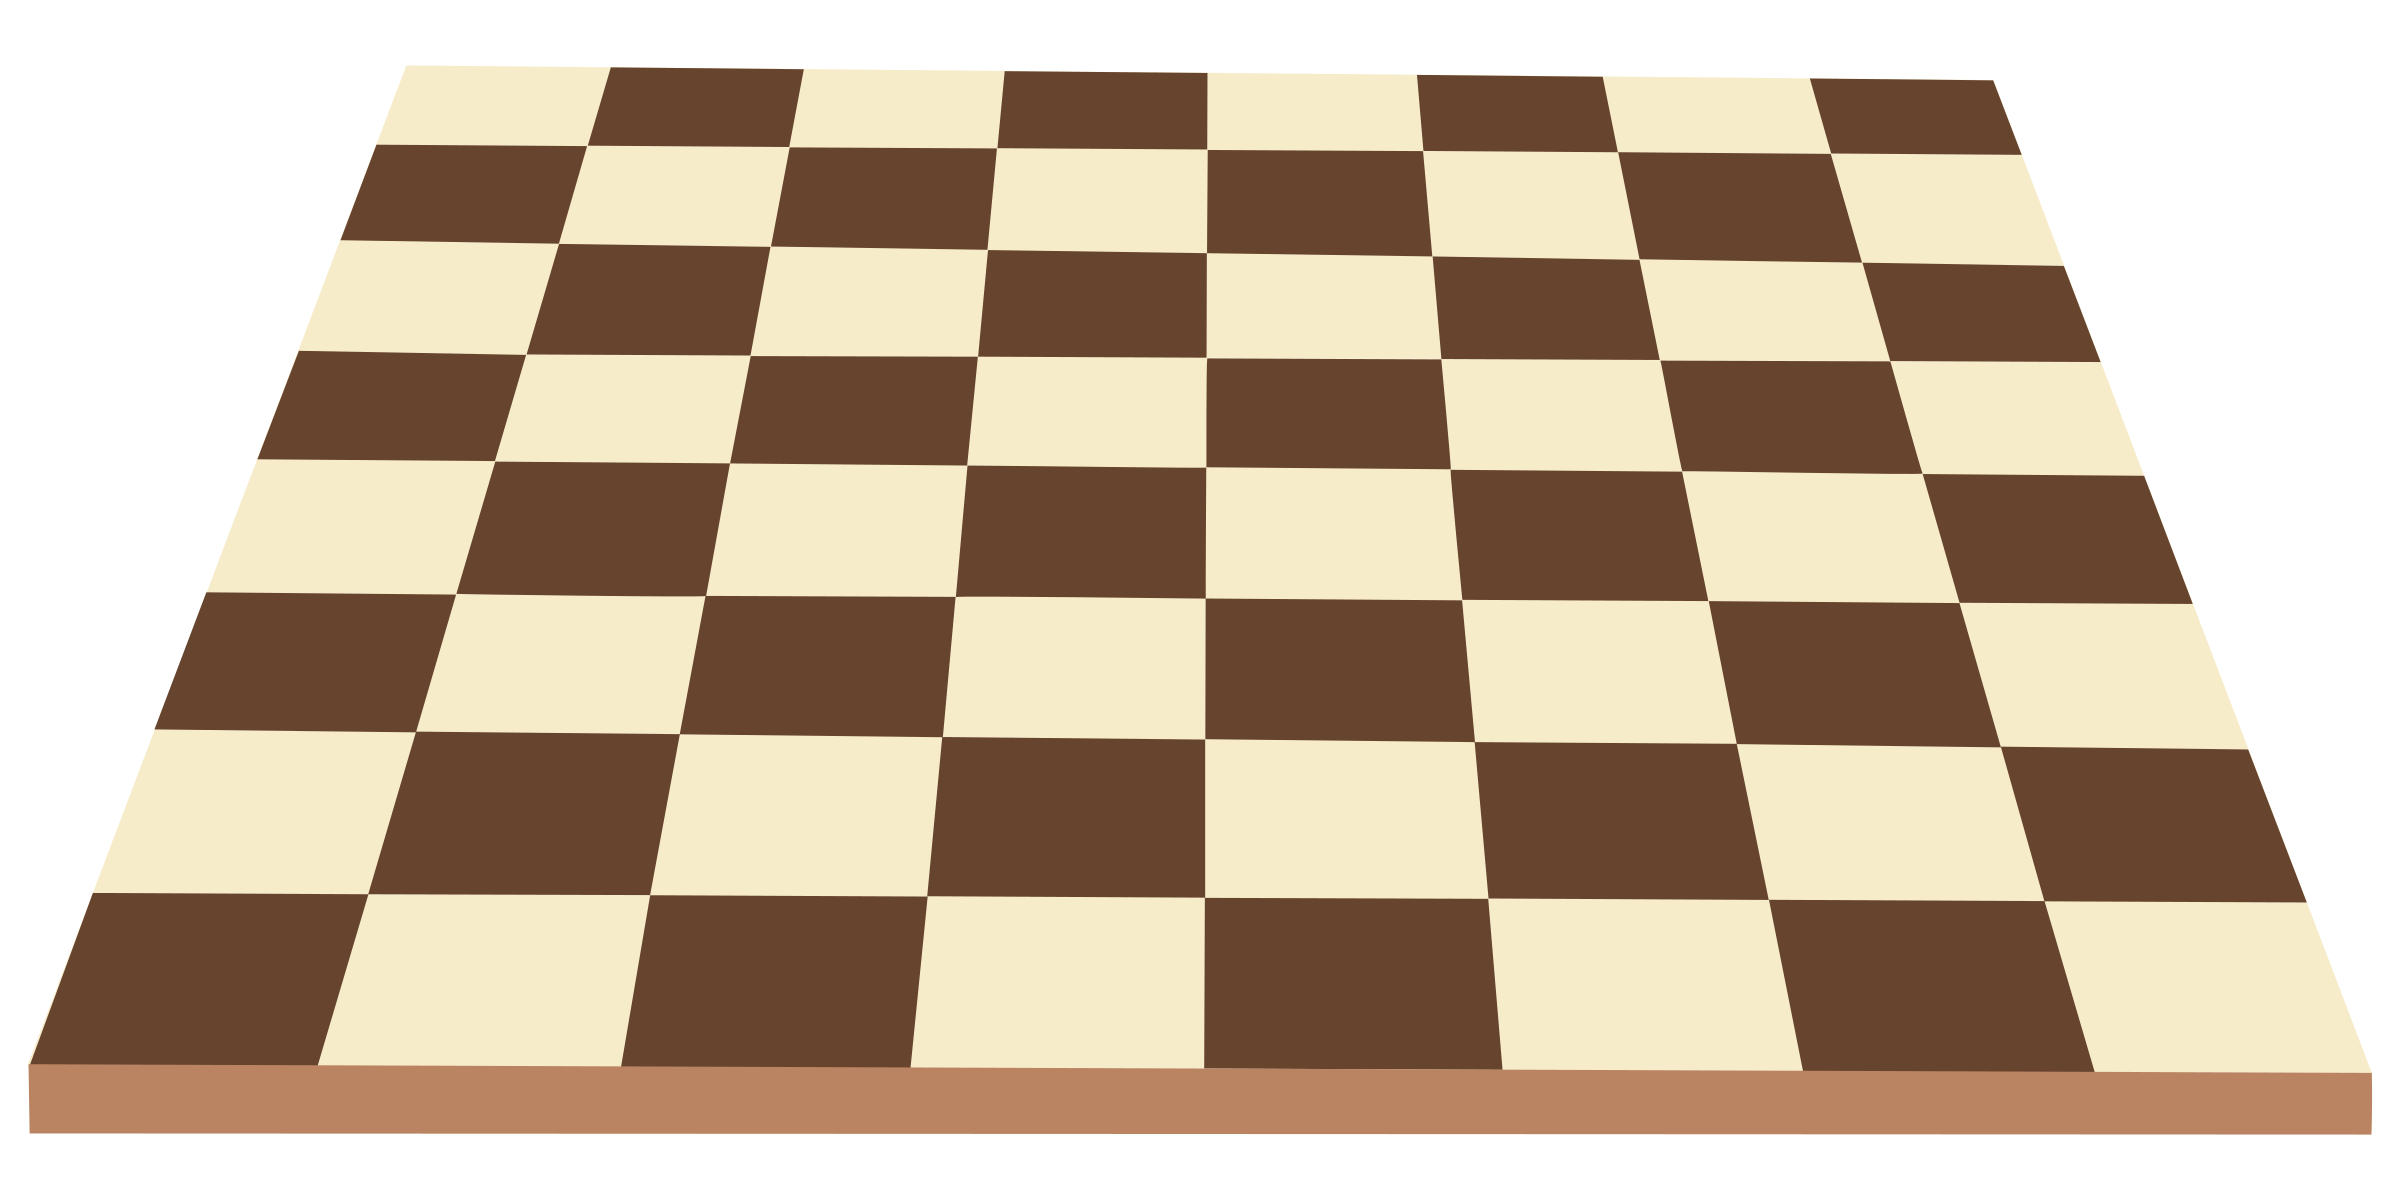 Chessboard clipart png download Free Chess Board Cliparts, Download Free Clip Art, Free Clip Art on ... png download